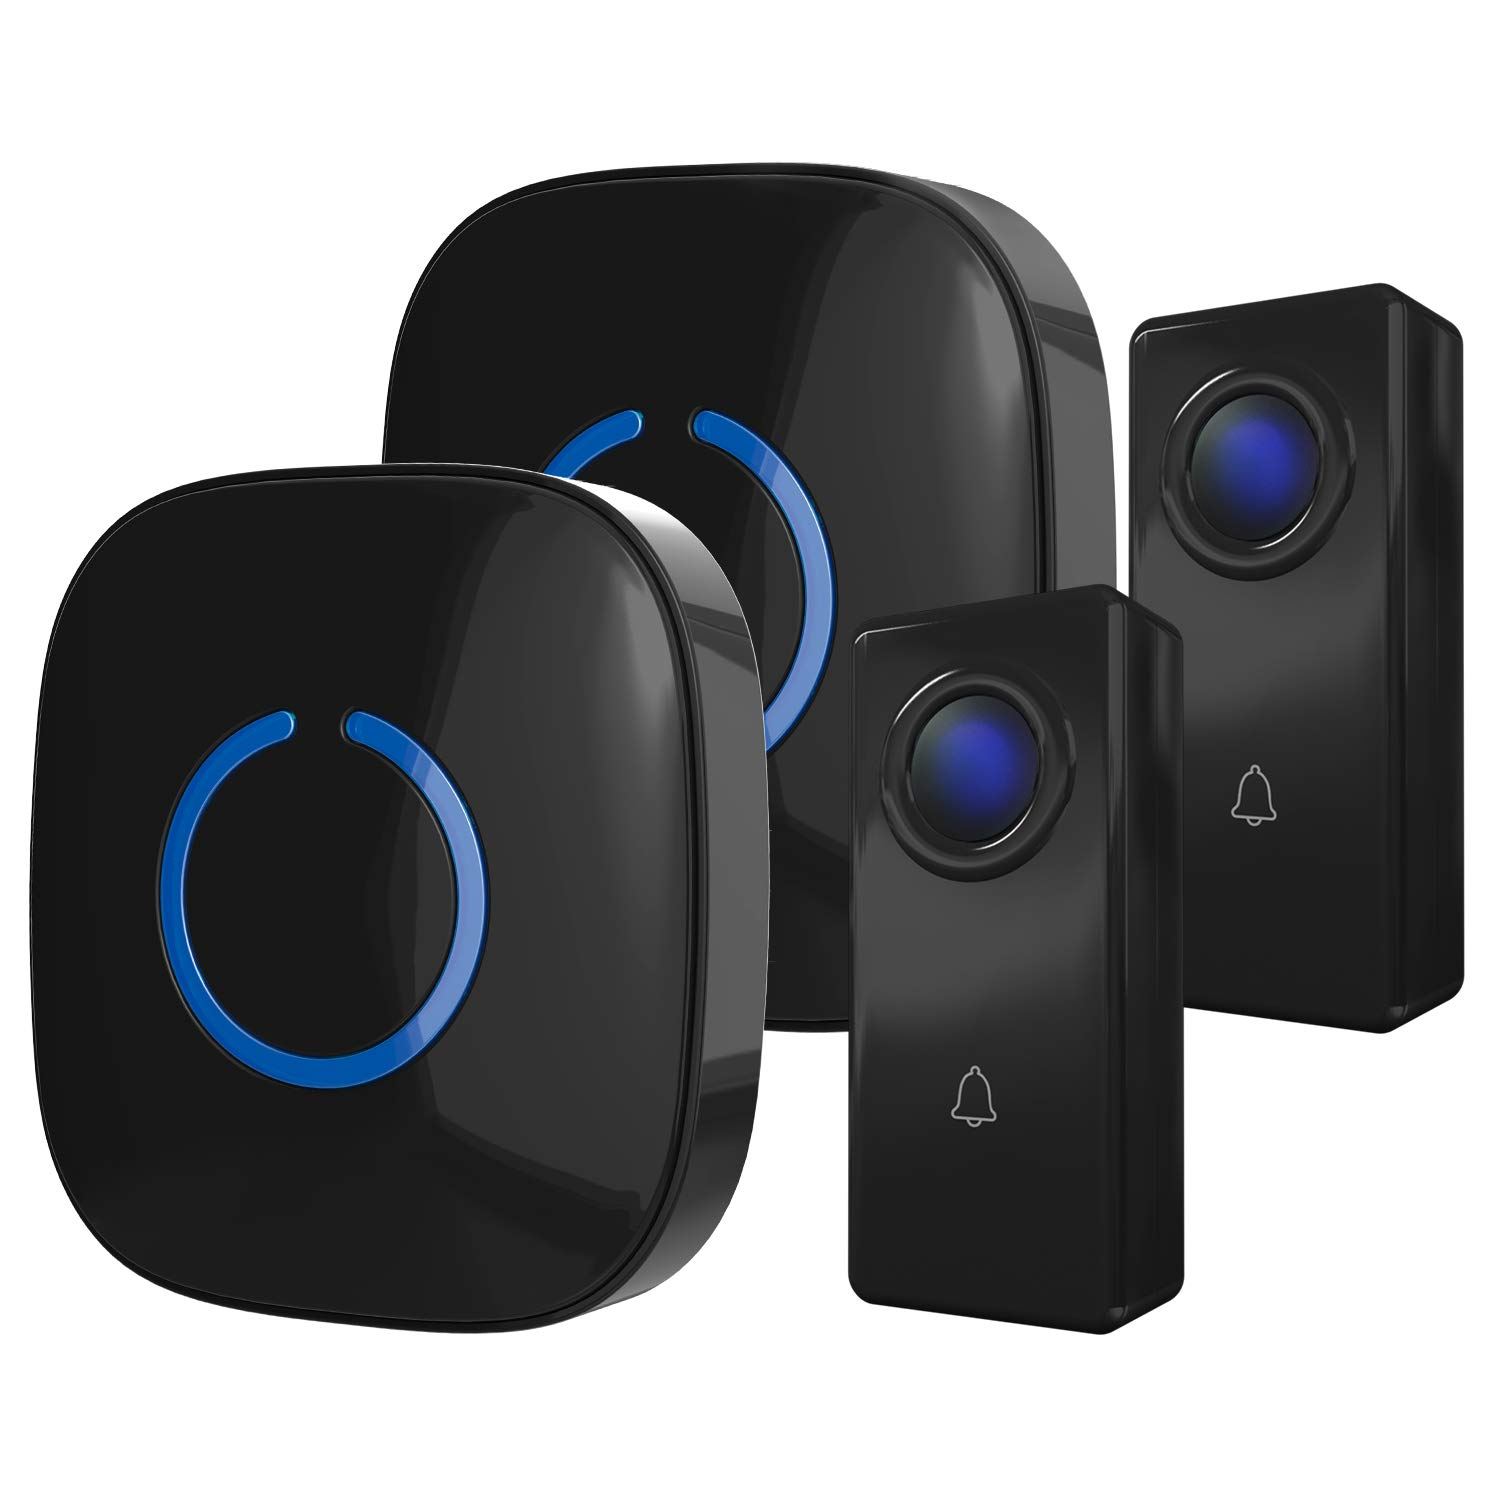 SadoTech Crosspoint Wireless Doorbell